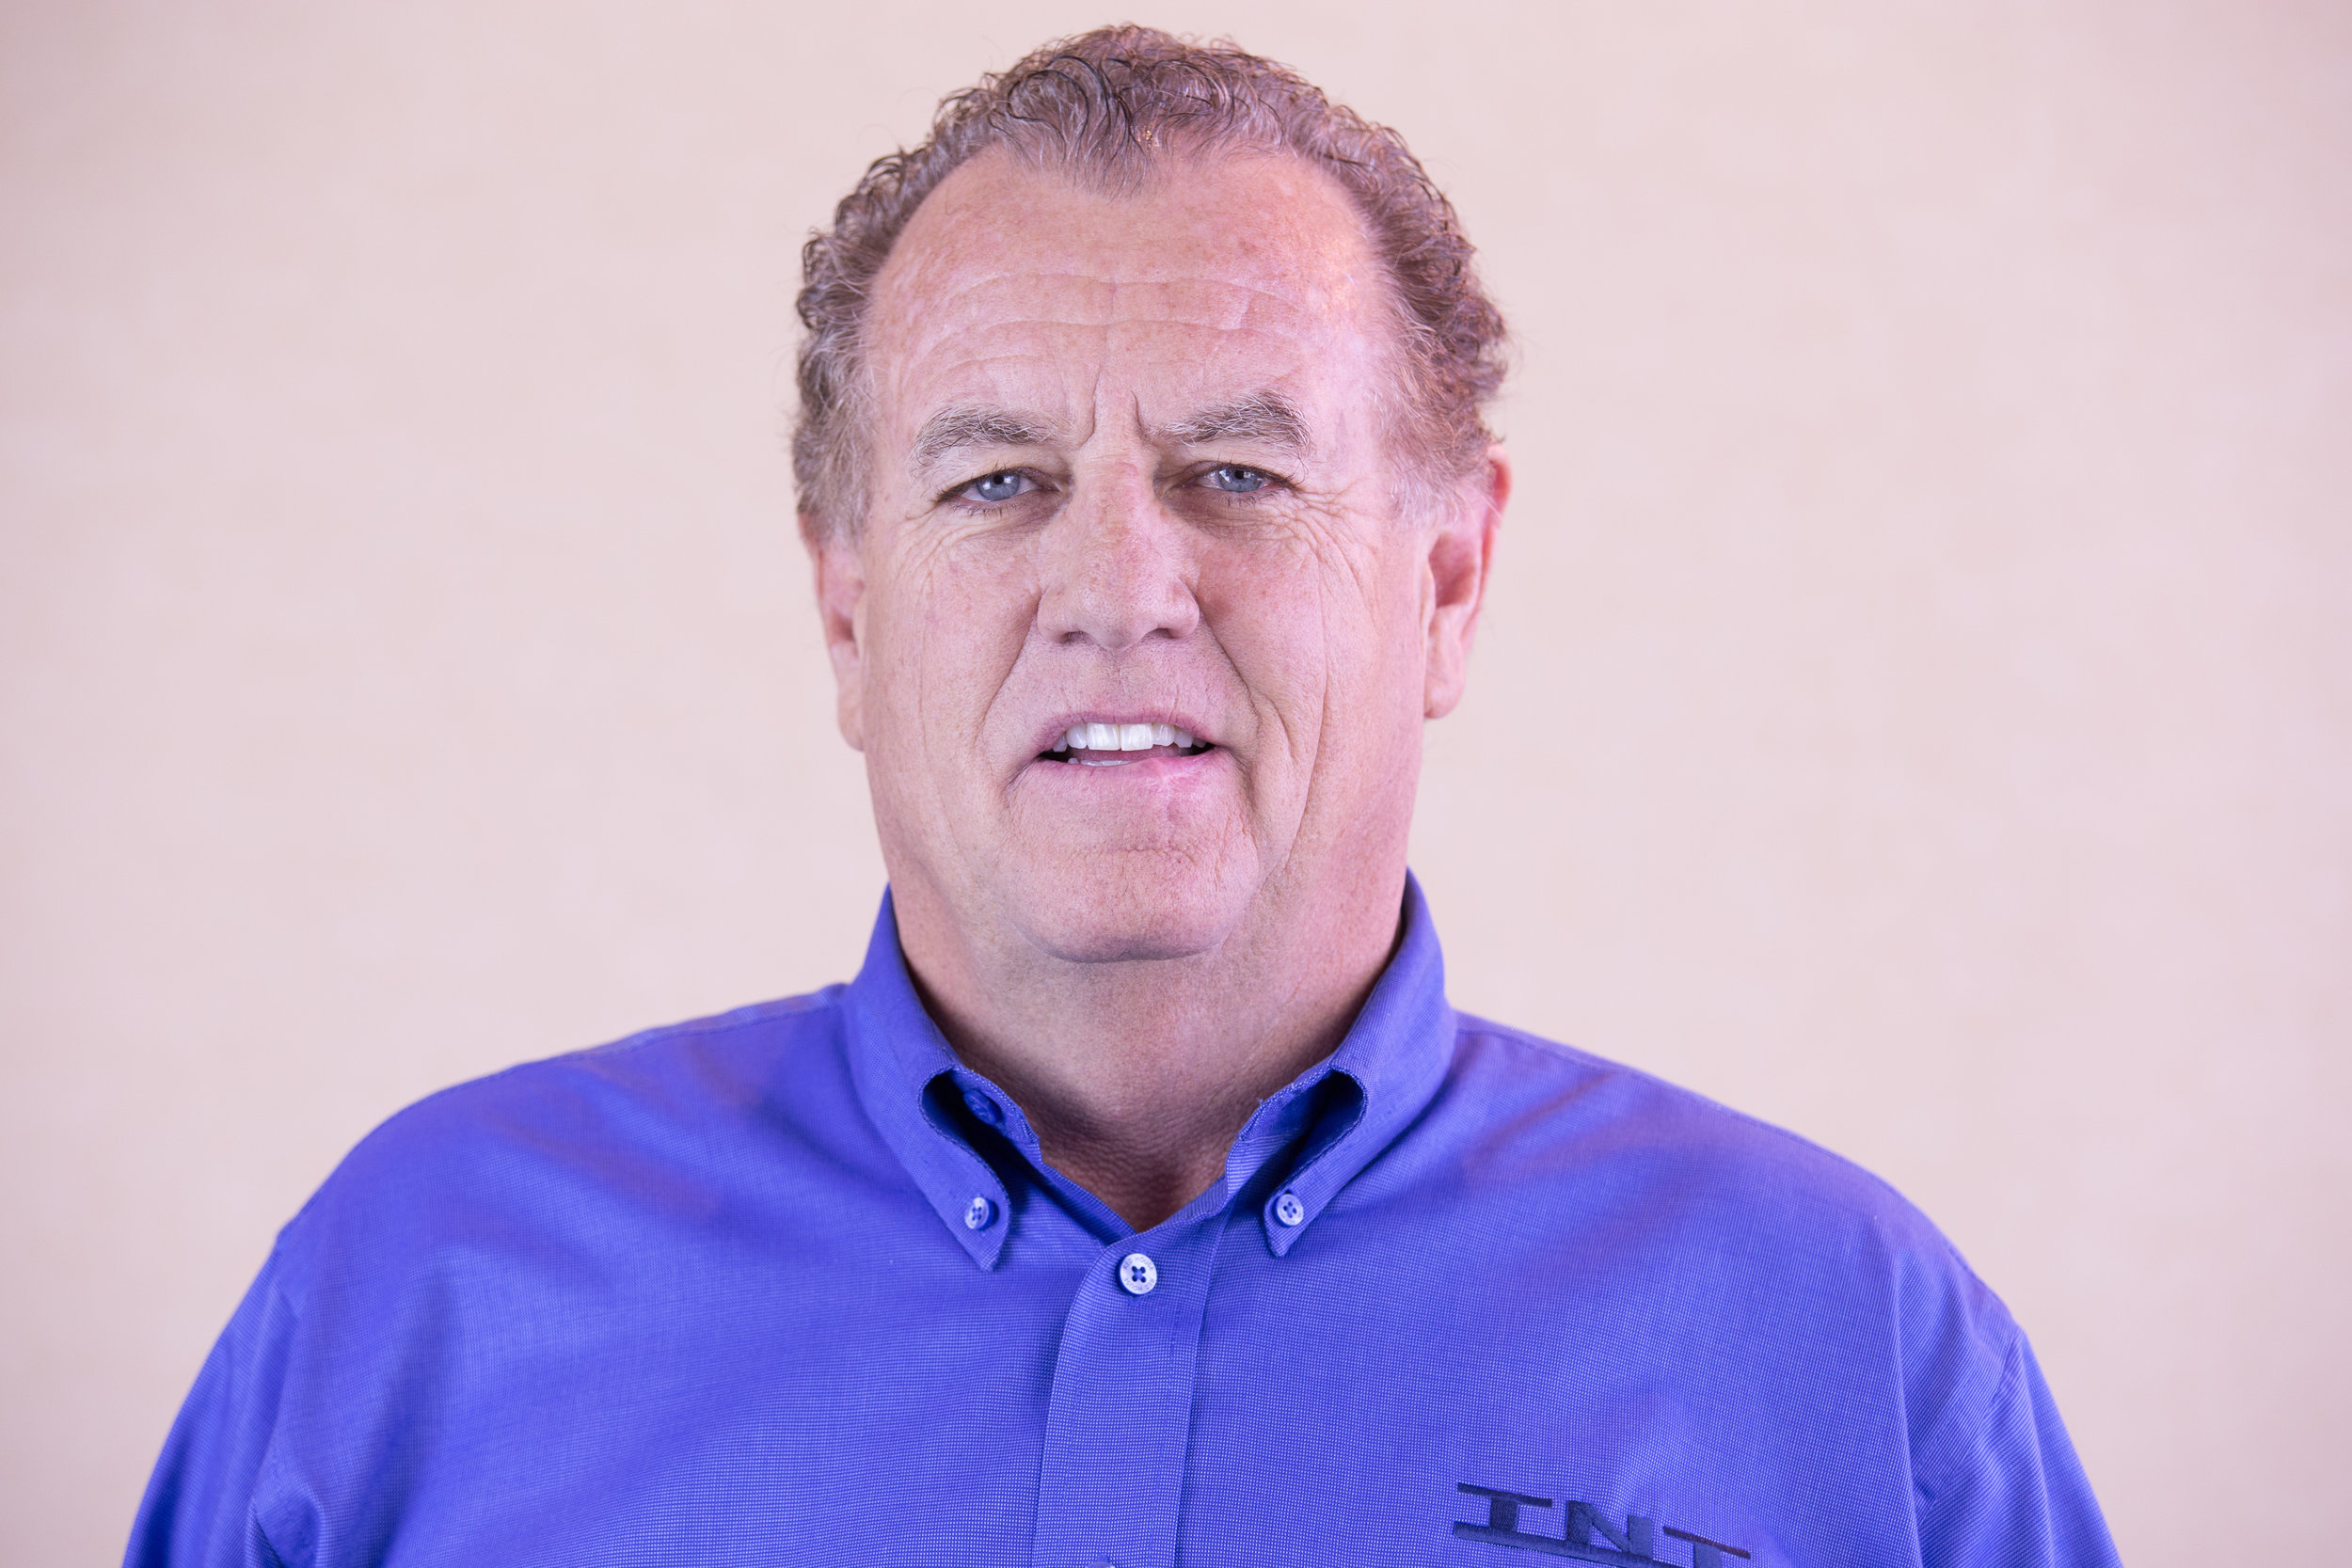 Ray Tuohy - Ray has been involved in the self storage industry since 1985 when he joined Instorage Self Storage Company. During Ray's tenure with Instorage he was involved aspects of acquisition and/or development of over 20 self storage facilities in southern California. Ray's responsibilities were all the day to day aspects of the sites. Under Ray's direction Instorage became highly successful and in 1997 sold to Storage USA. Ray decided to start his own management company. Almost immediately, Ray and Dianne Tanna joined forces and TNT Management was born.